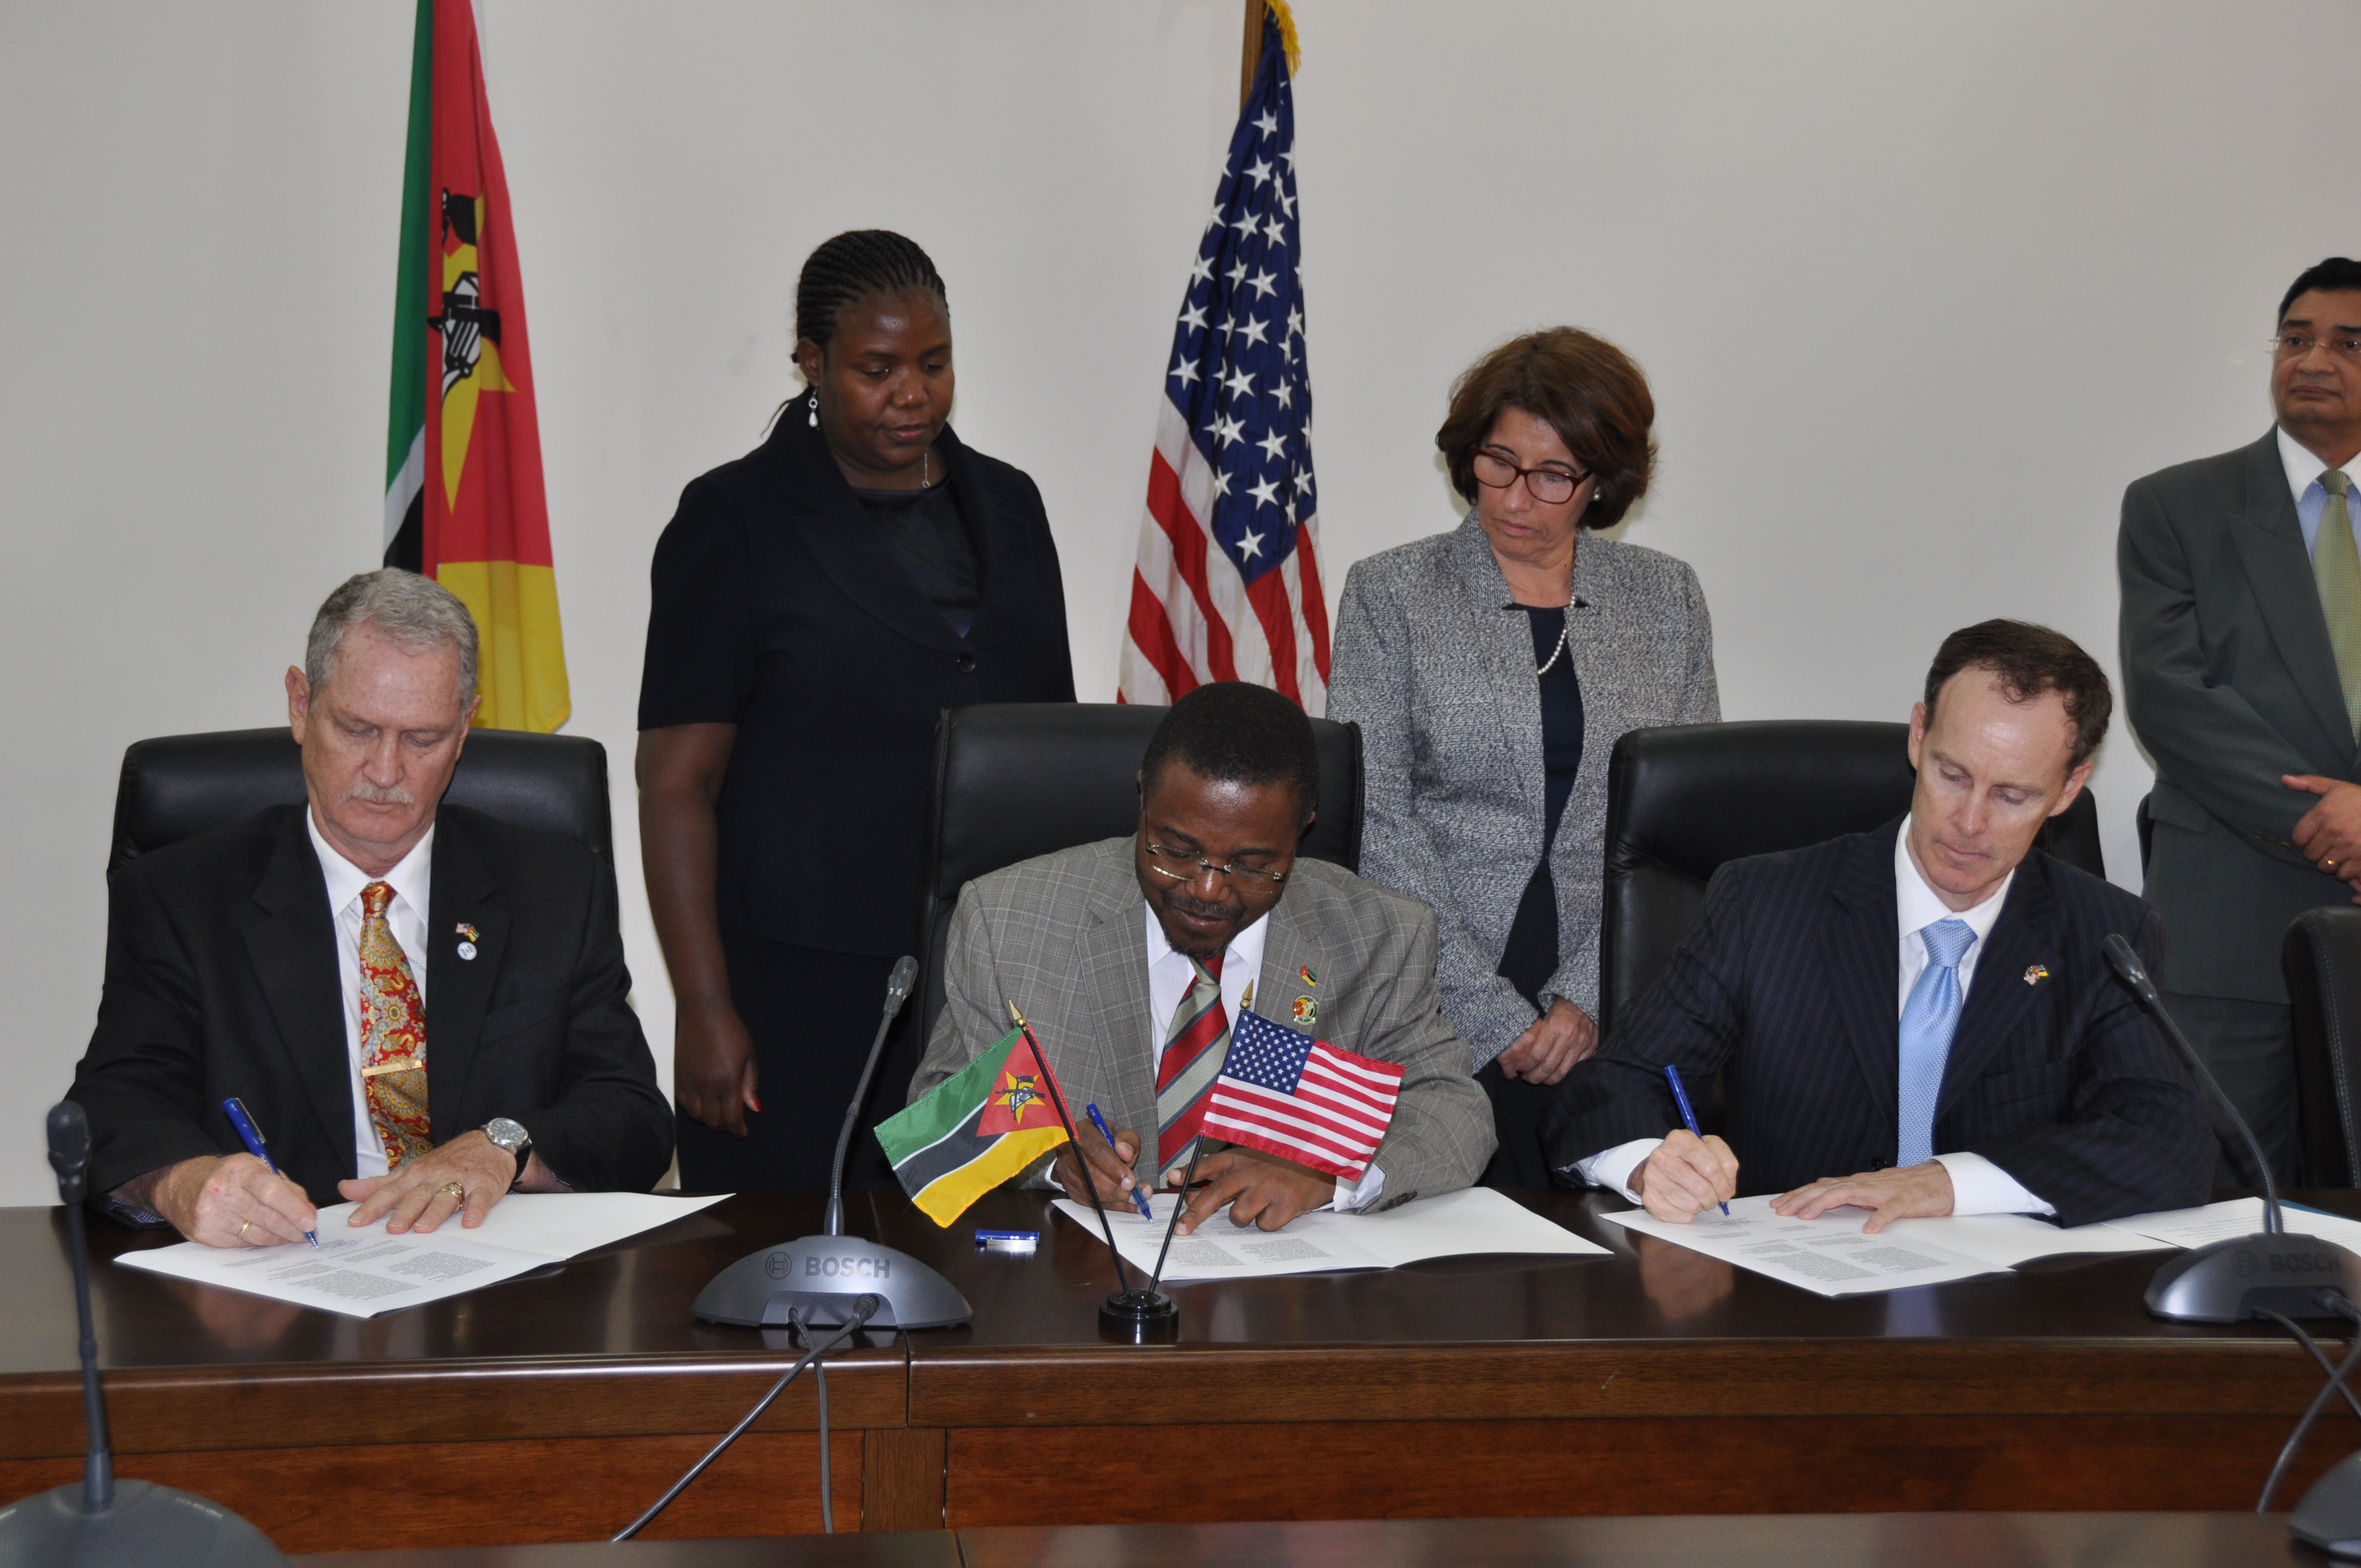 USAID partners with the Mozambique's Attorney's General Office to combat corruption and control illegal activities